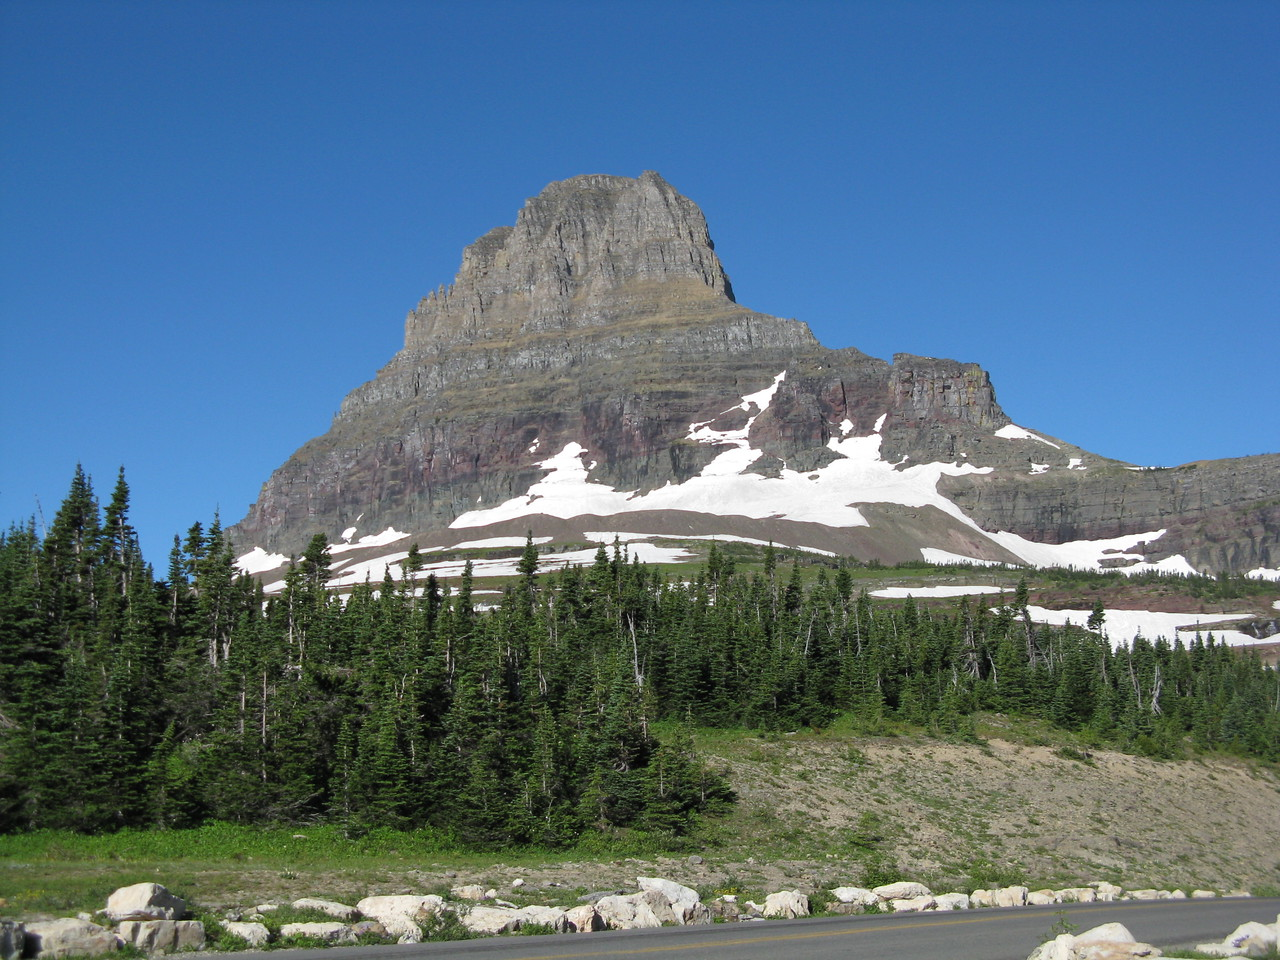 Clements Mountain, 8760 feet high, behind the visitor center, seen from across the Going-To-The-Sun Road.